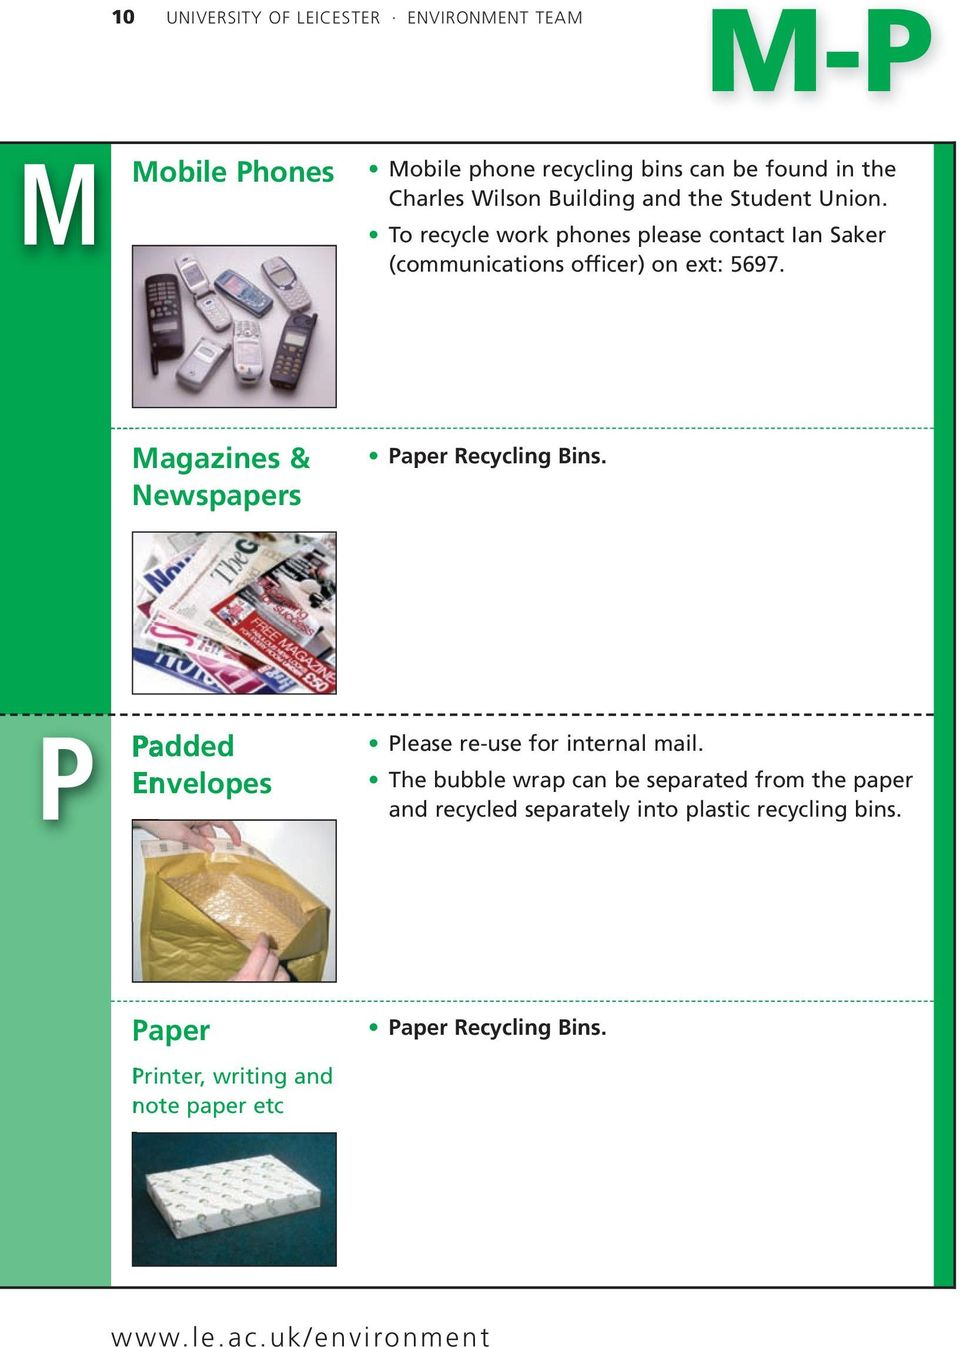 To recycle work phones please contact Ian Saker (communications officer) on ext: 5697.